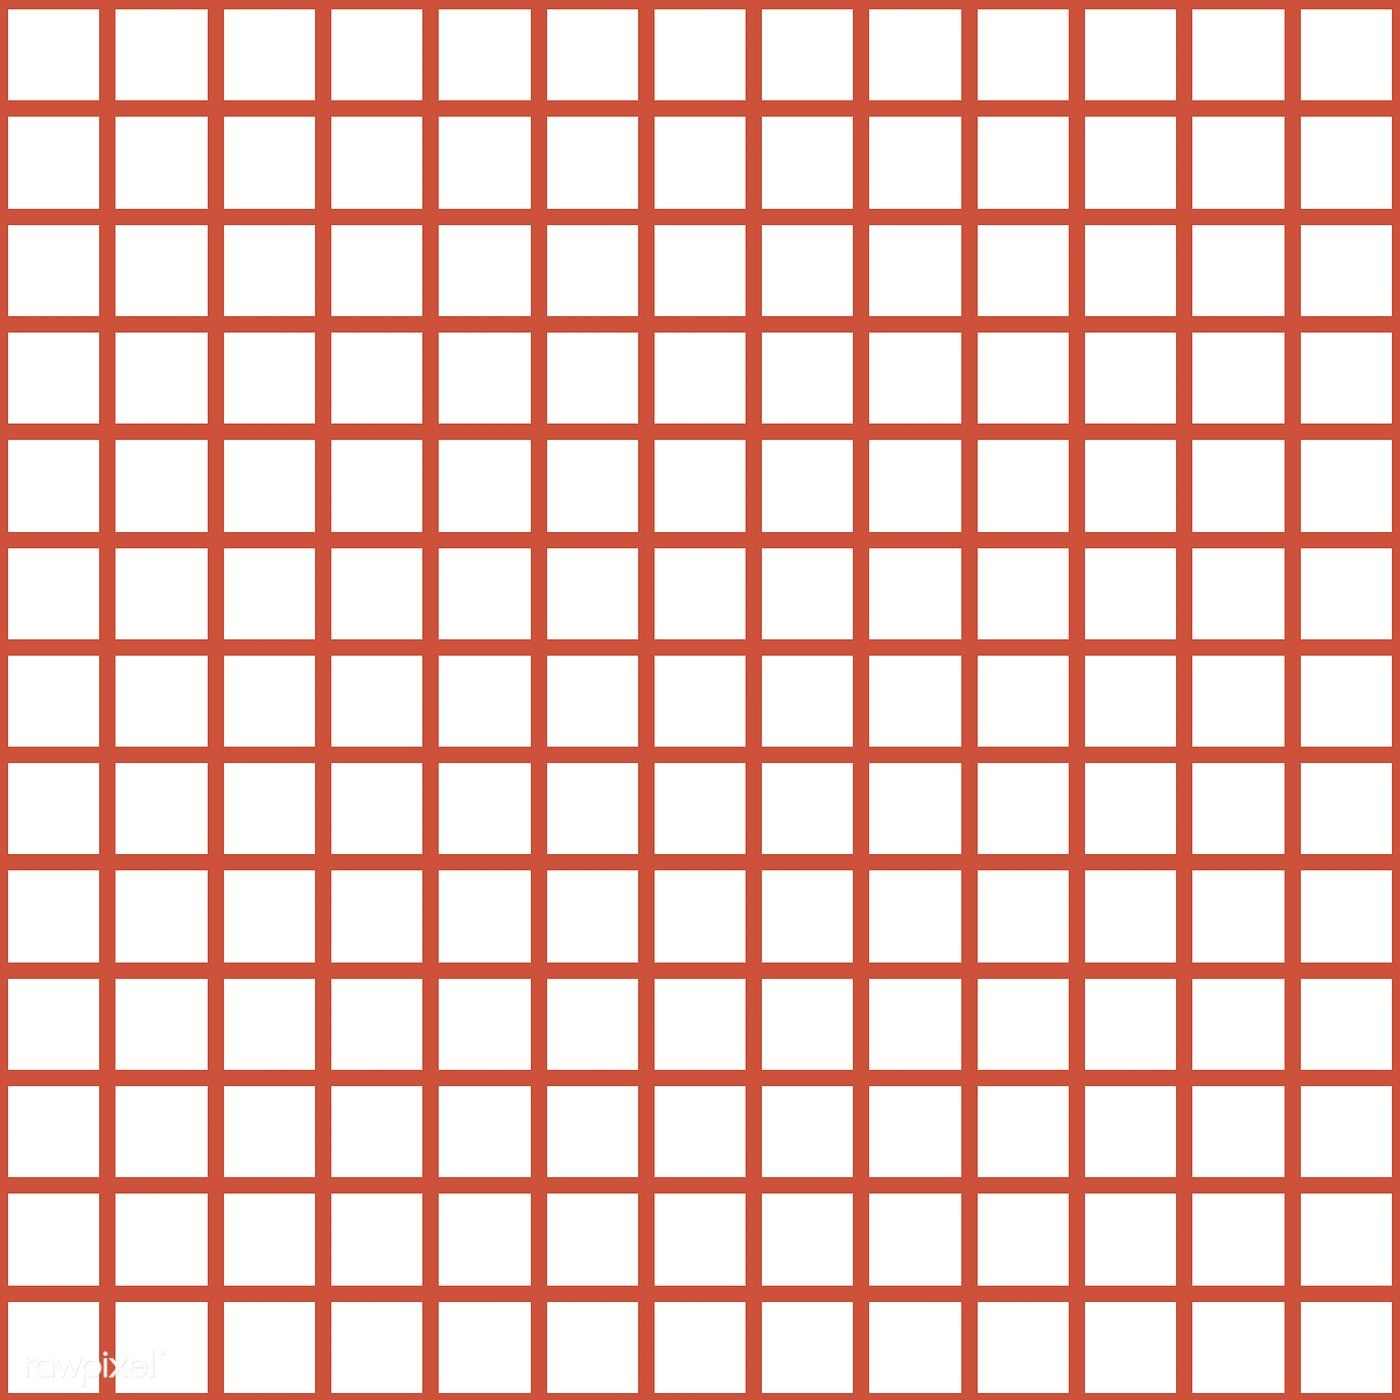 Red Seamless Grid Pattern Vector Free Image By Rawpixel Com Filmful Grid Design Pattern Grid Pattern Vector Free